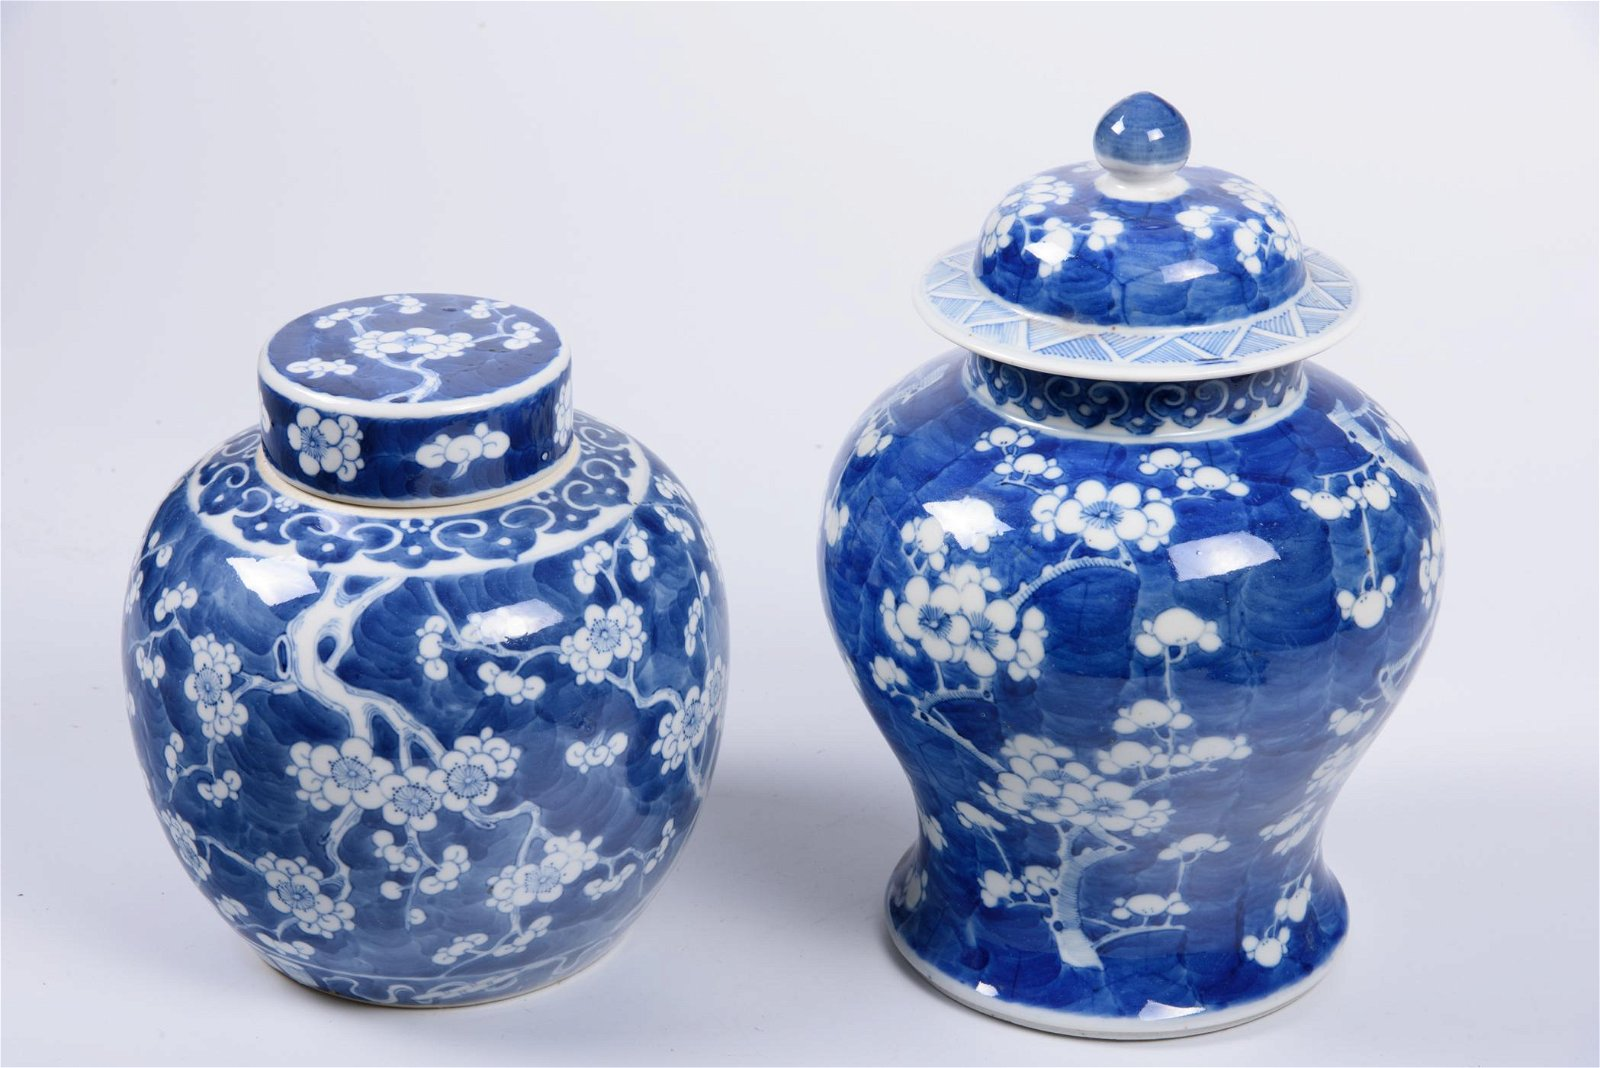 Two Asian Blue and White Porcelain Jars